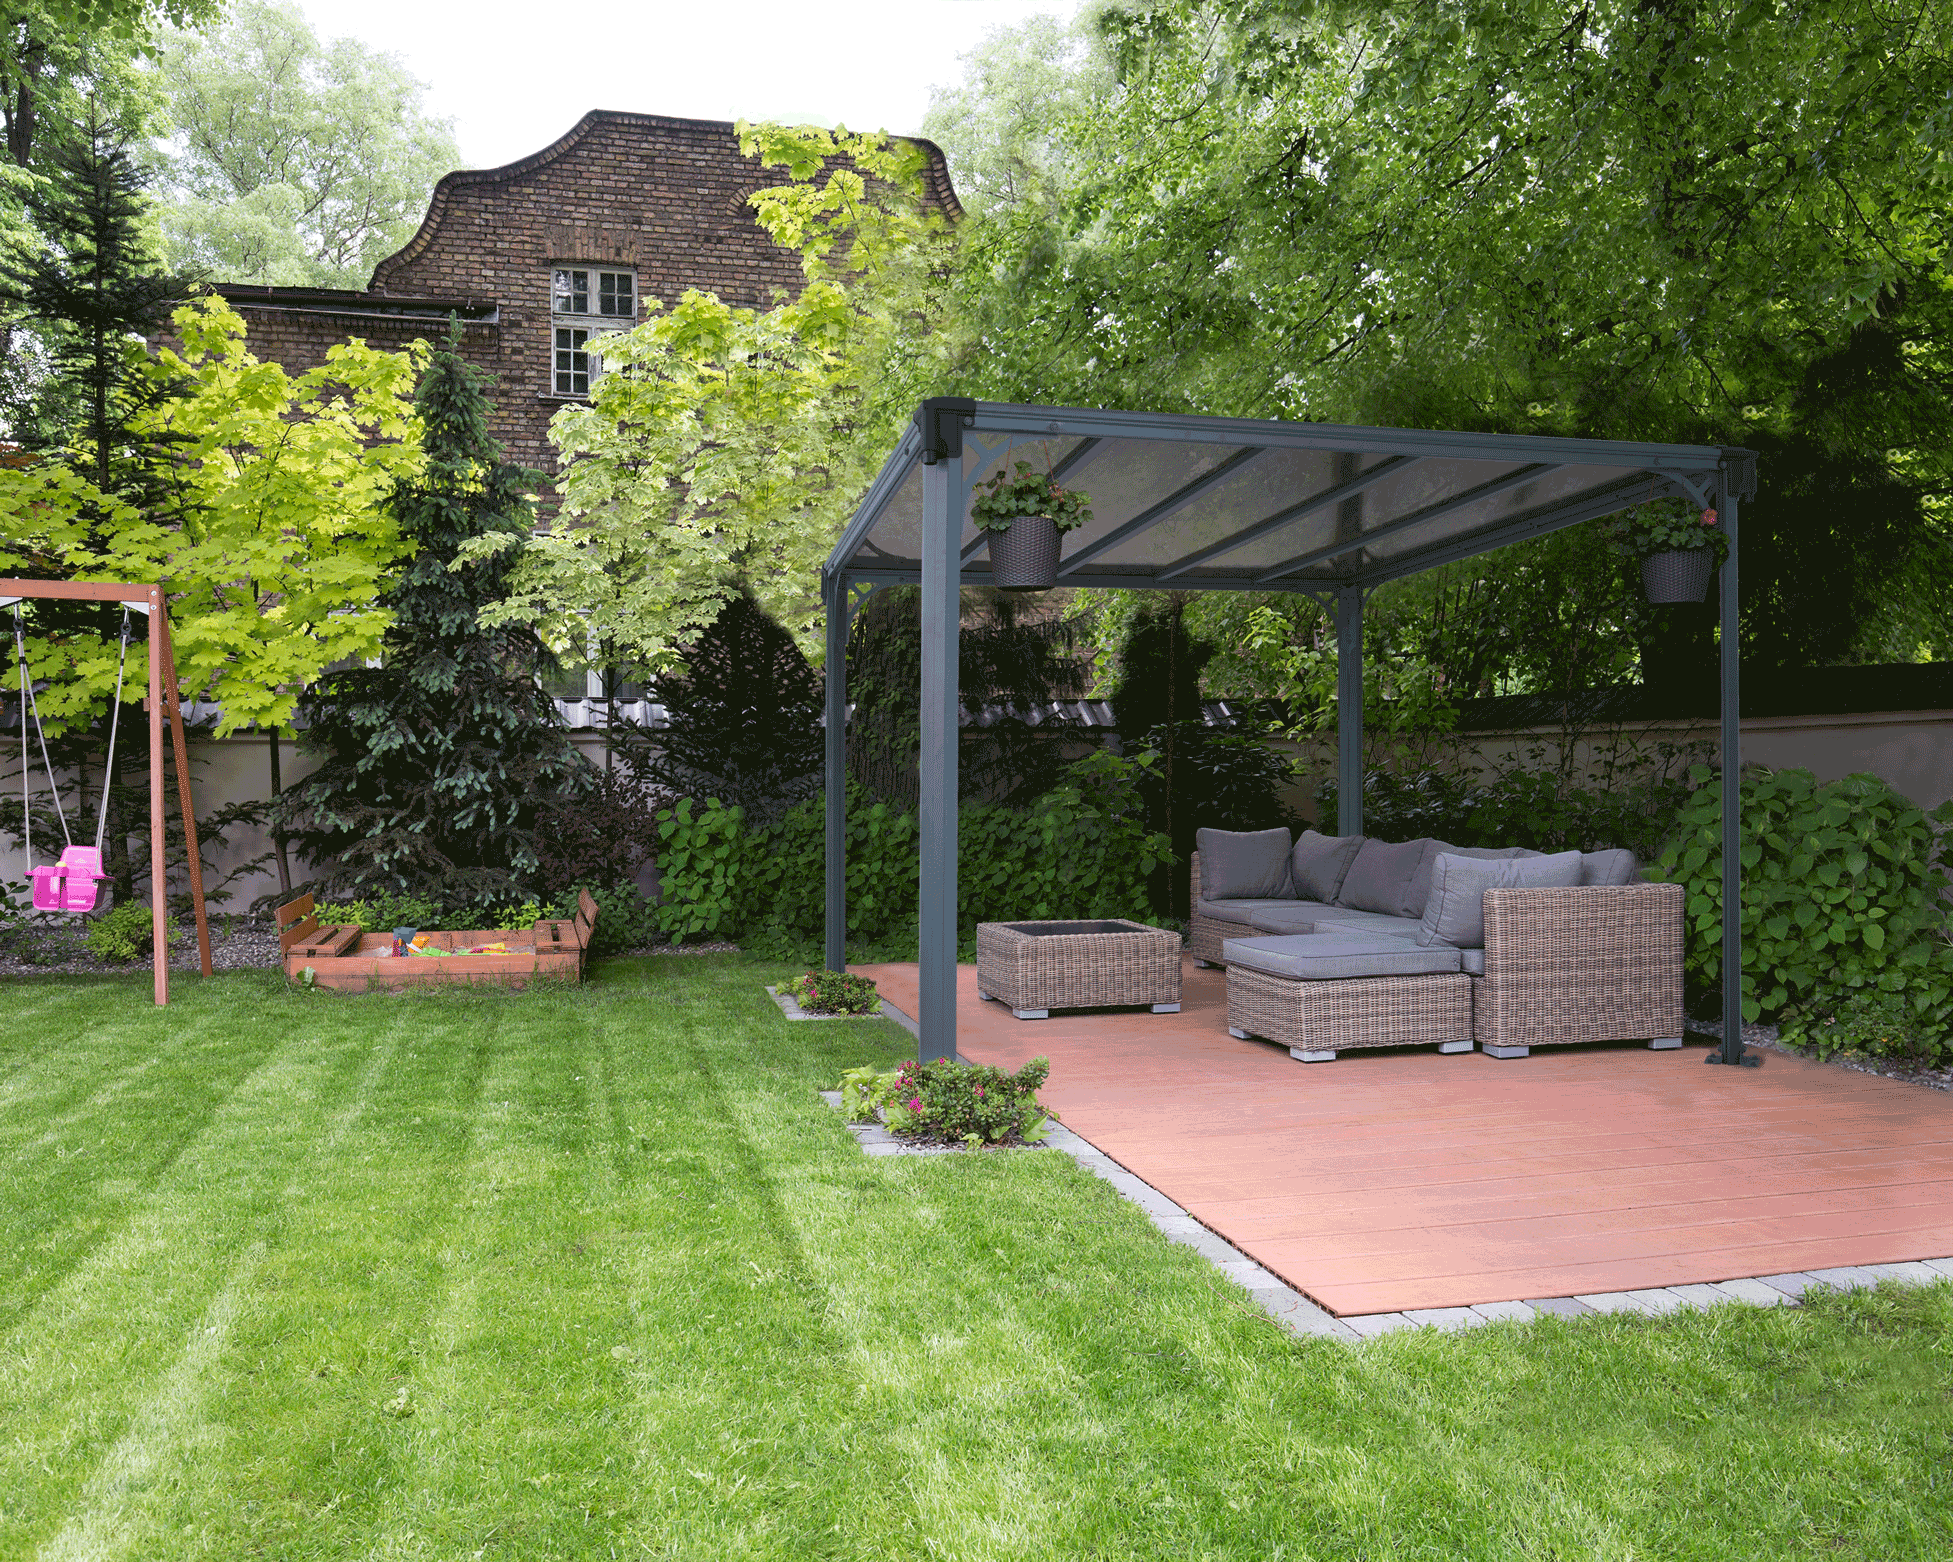 Garden Gazebo Wwwpixsharkcom Images Galleries With A